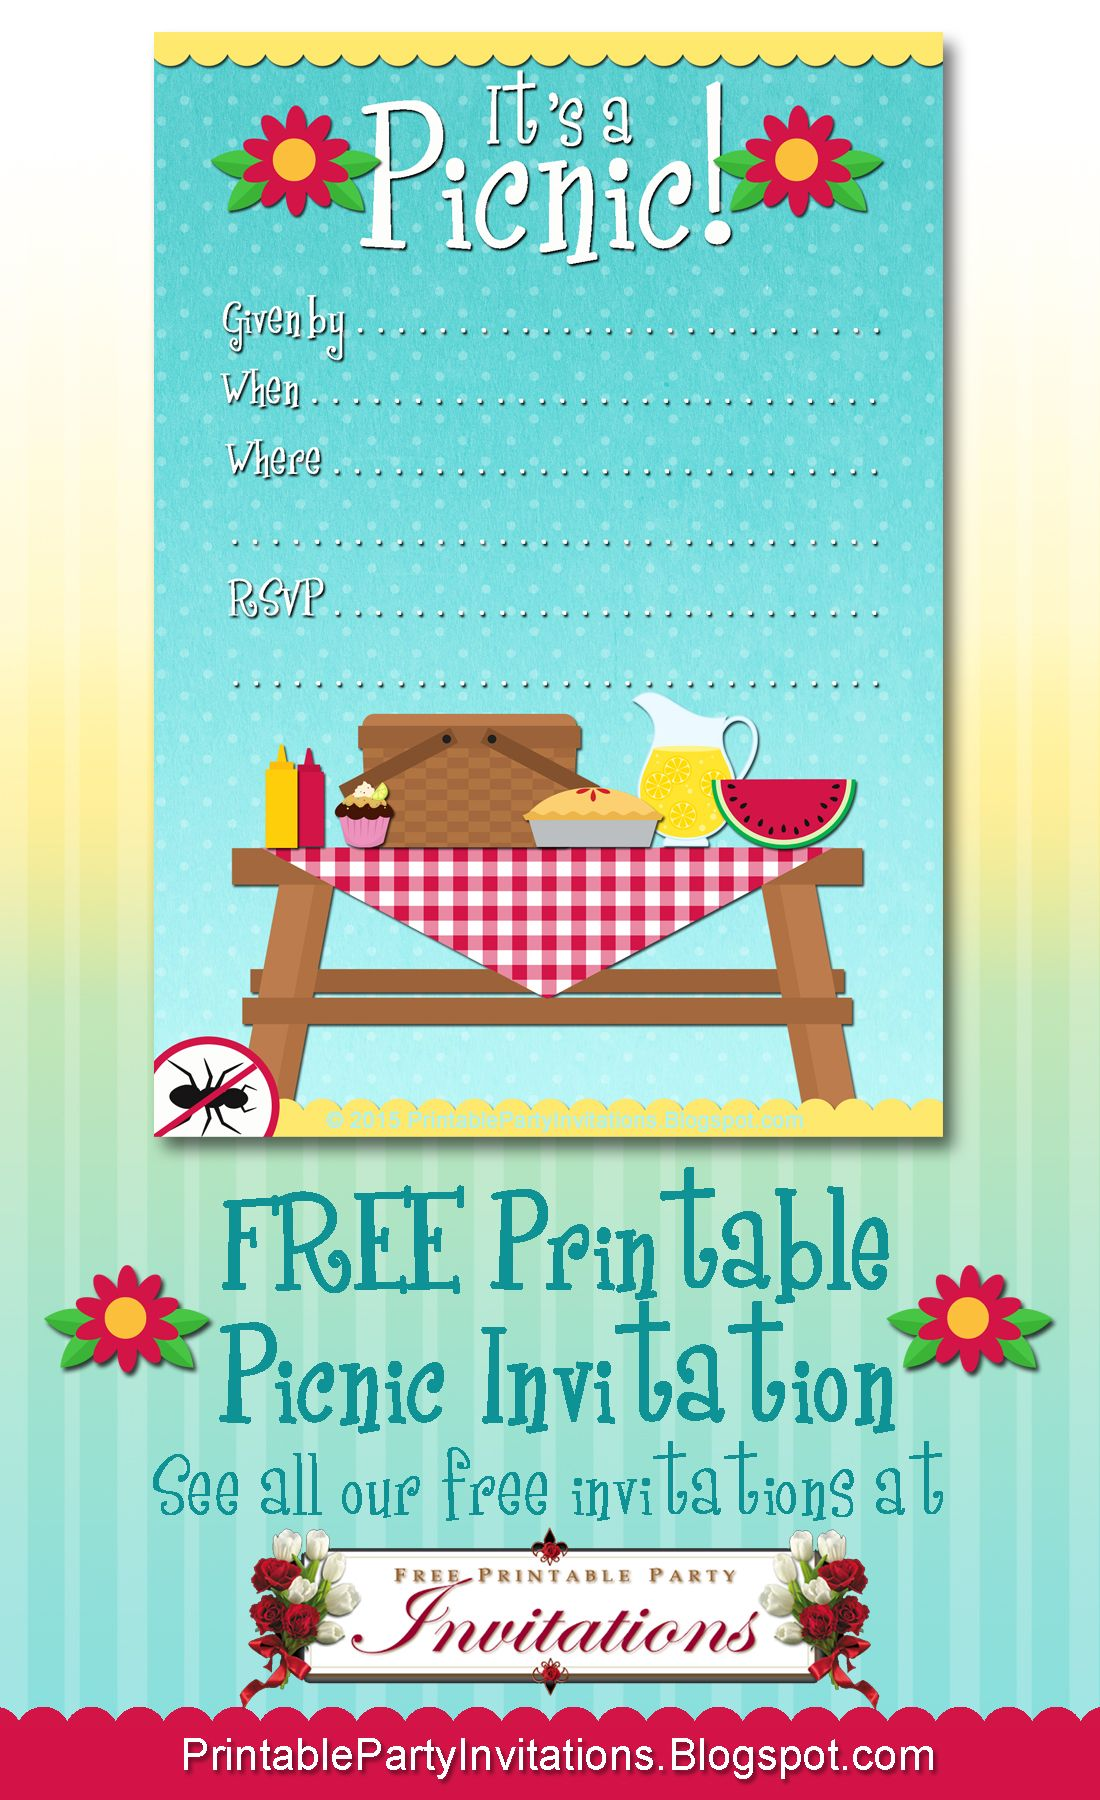 FREE Printable Picnic Invitation  Company Party Invitation Templates